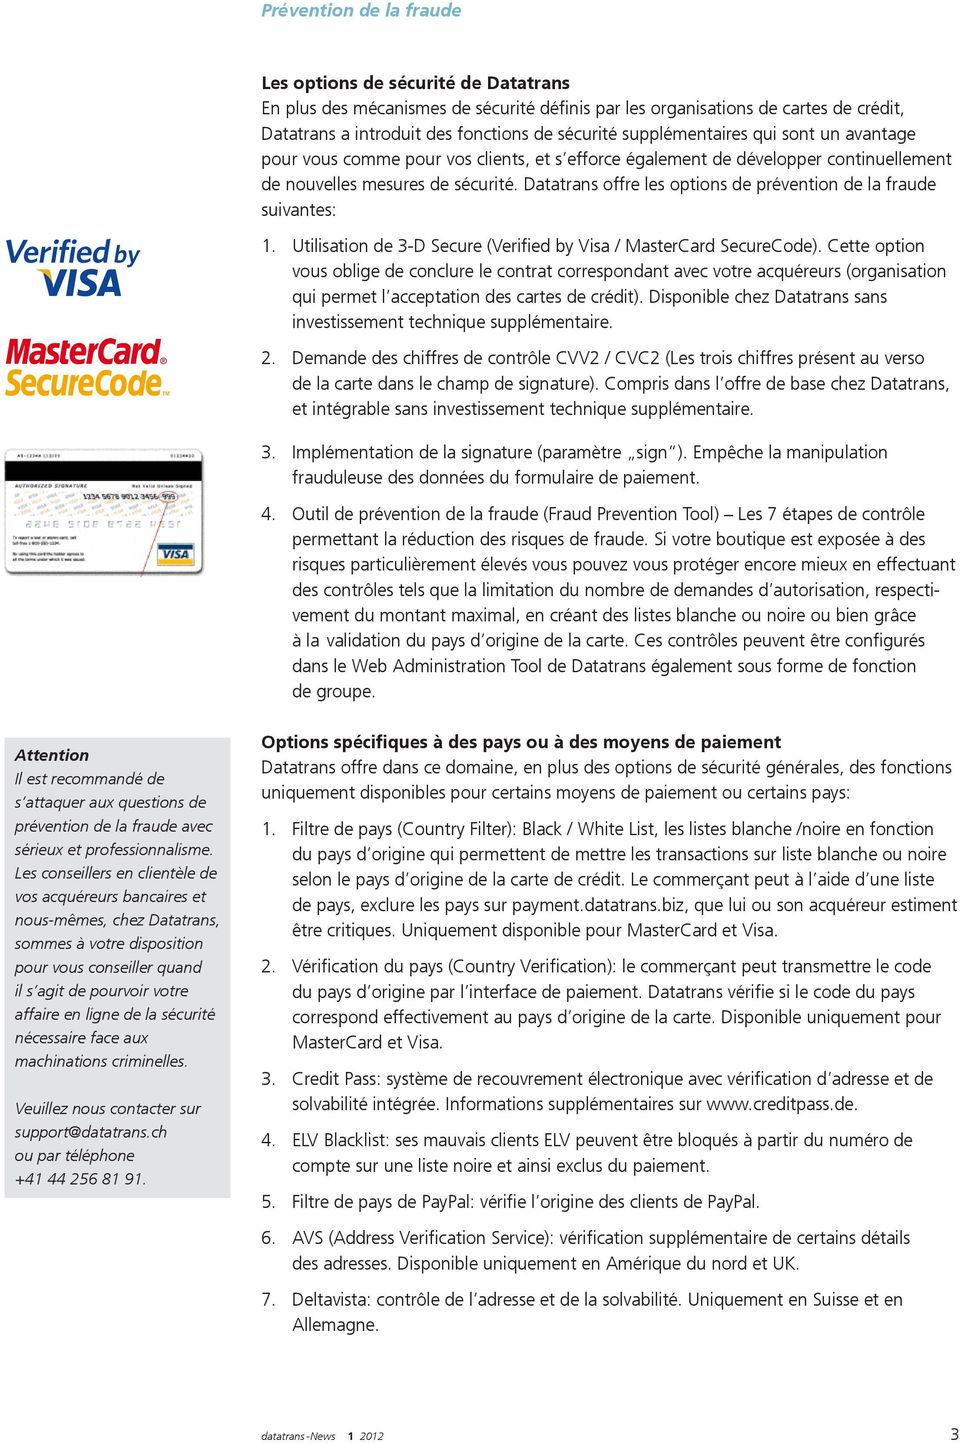 Datatrans offre les options de prévention de la fraude suivantes: 1. Utilisation de 3-D Secure (Verified by Visa / MasterCard SecureCode).